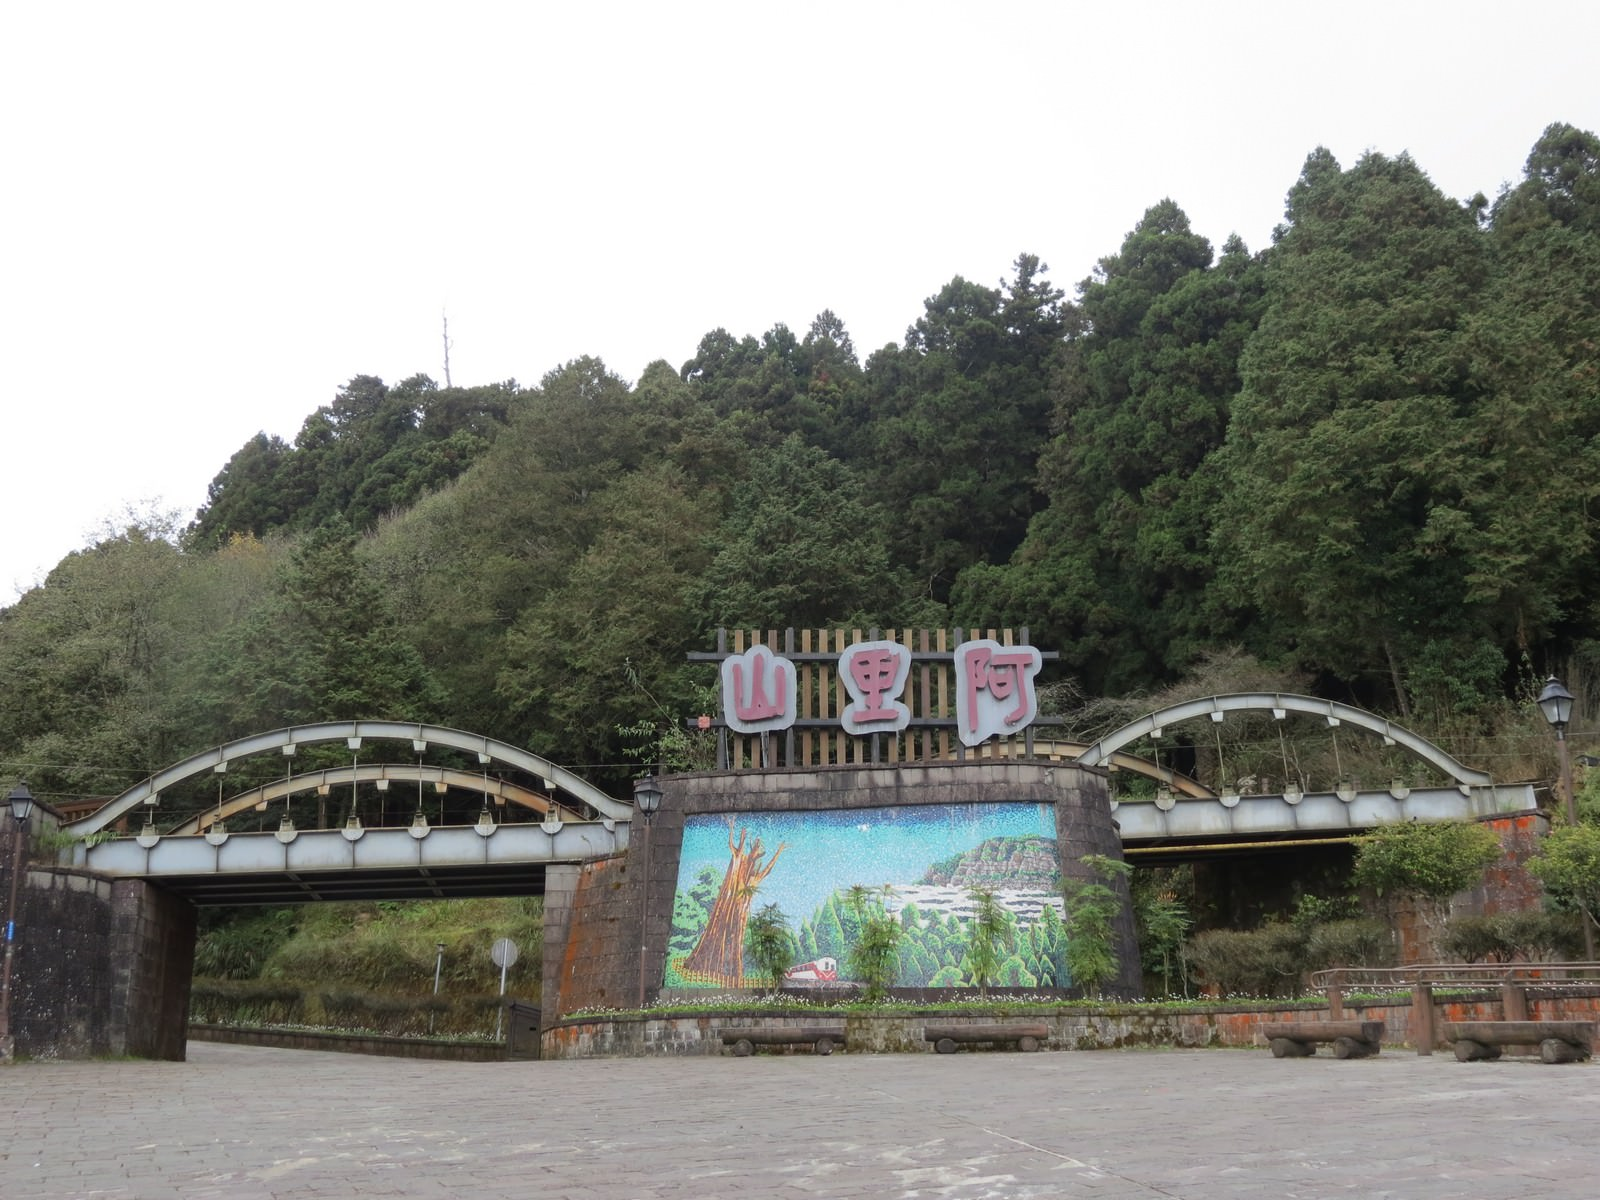 阿里山國家風景區(Alishan National Scenic Area)